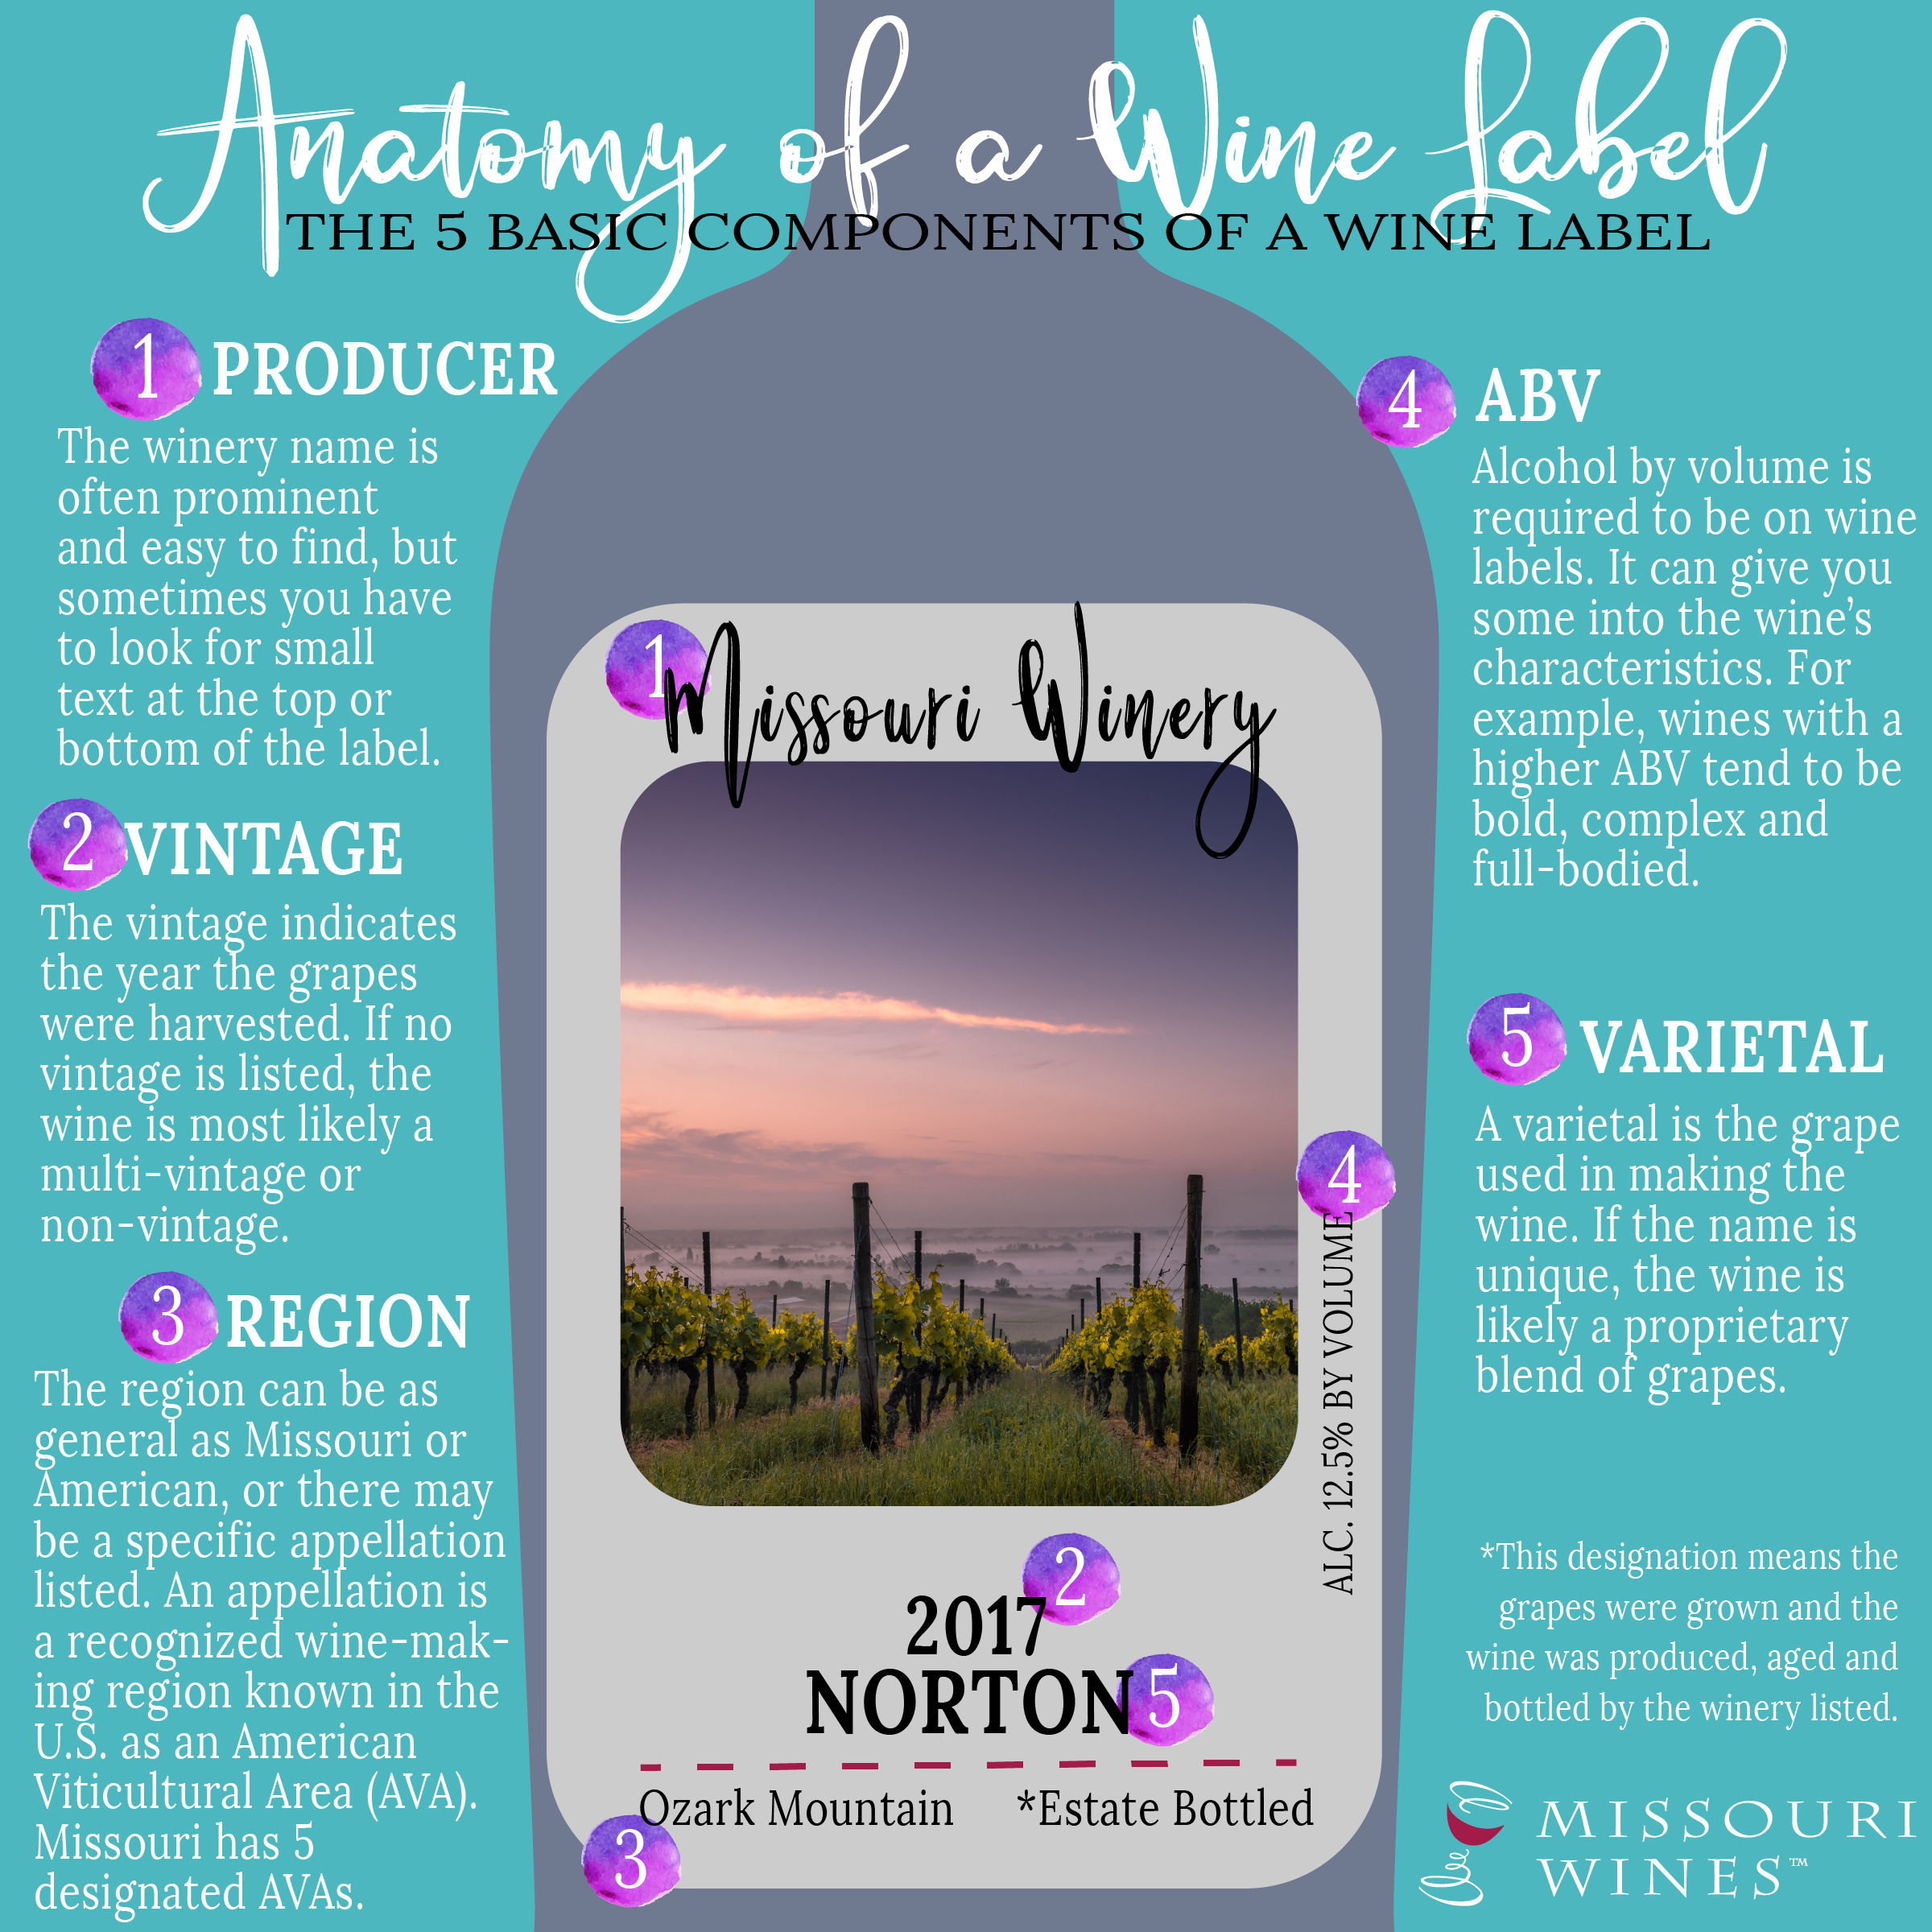 Anatomy of a Wine Label